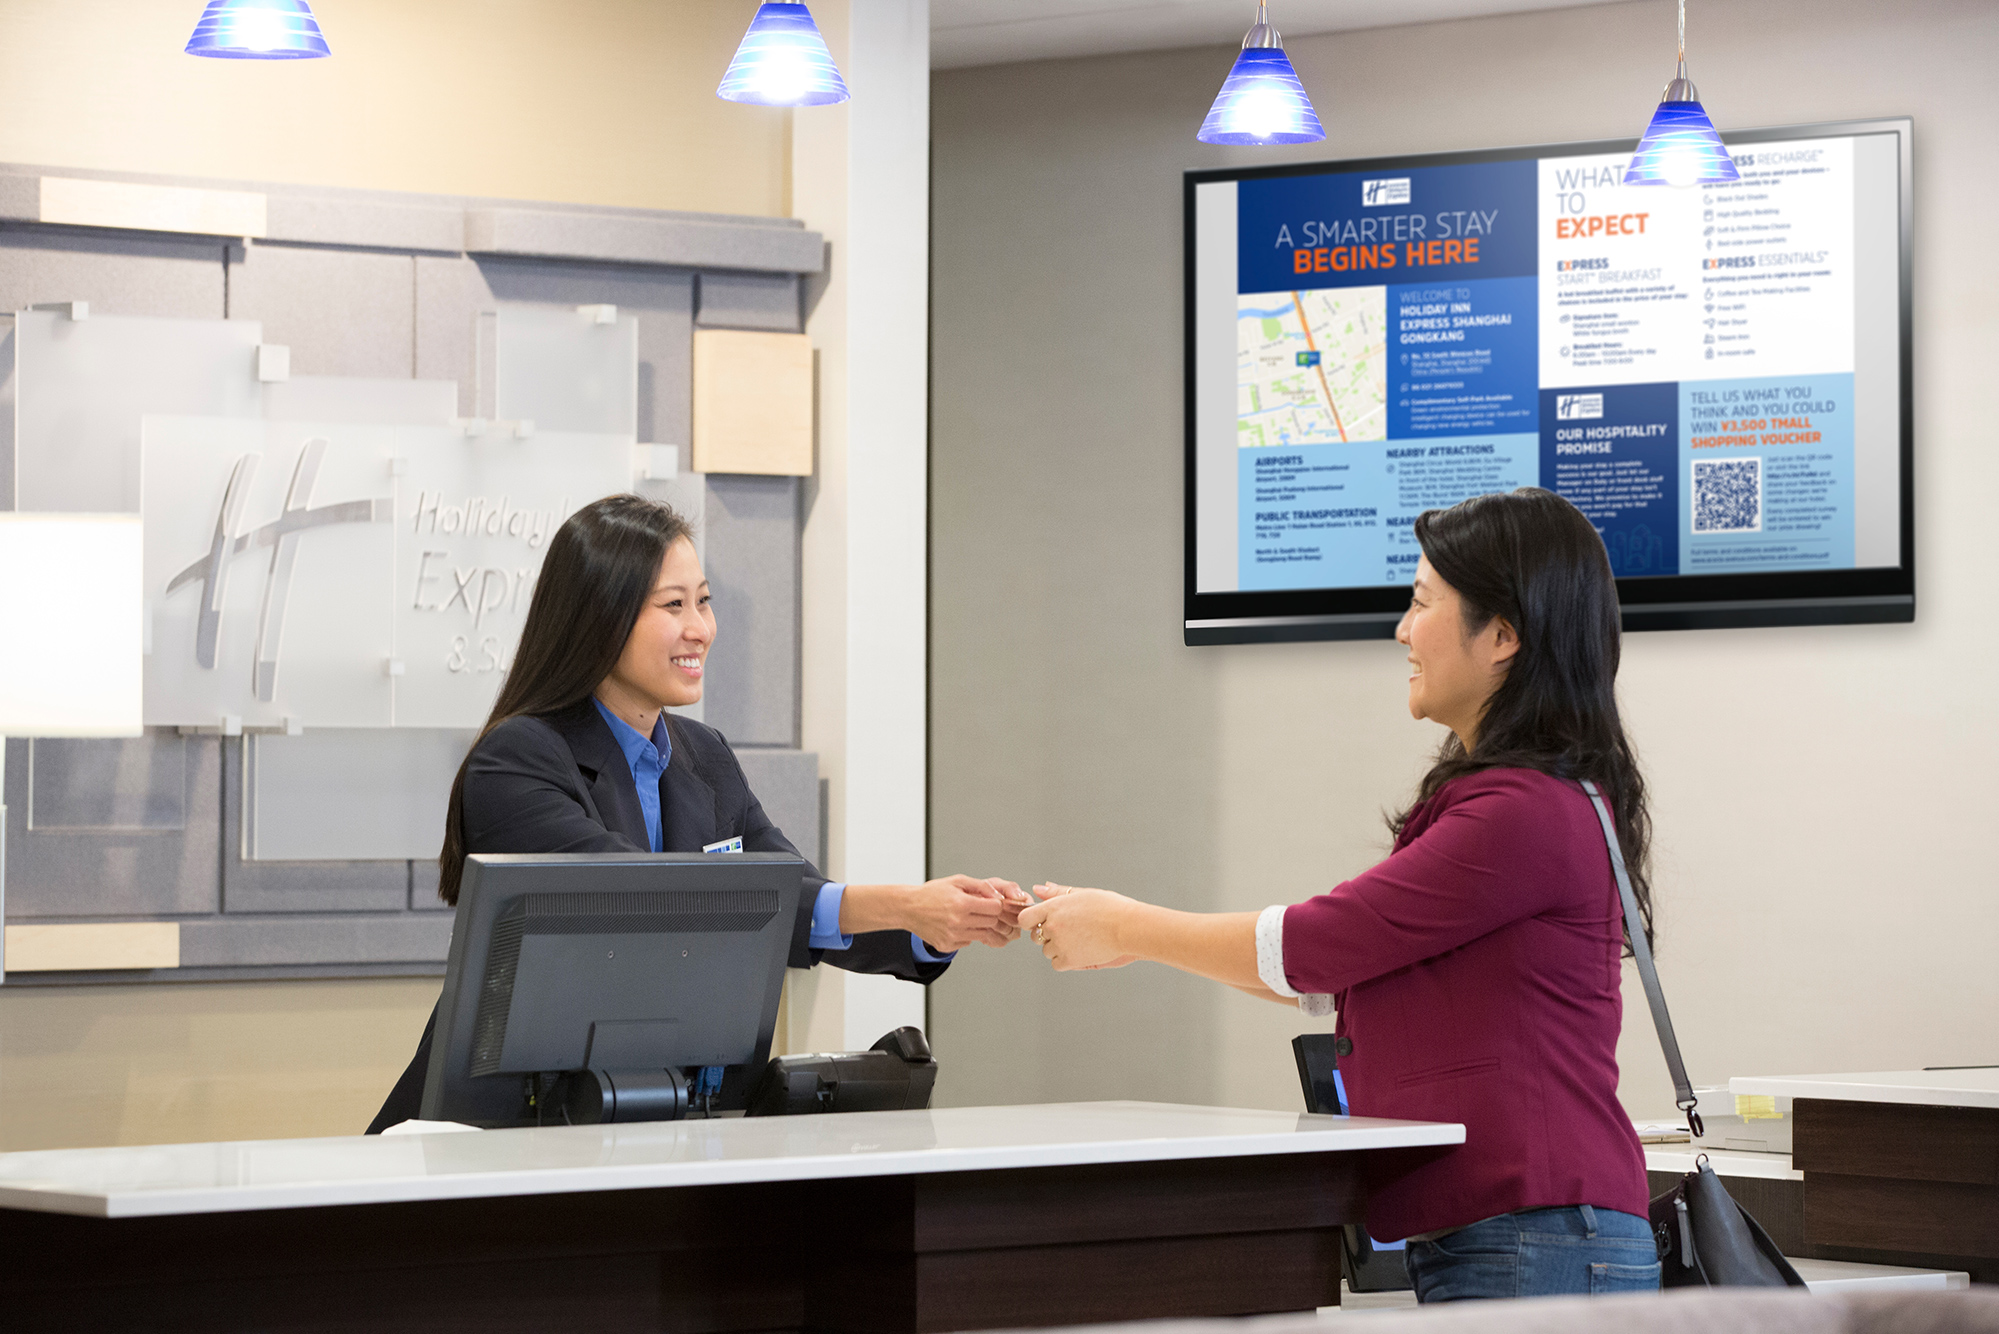 A guest shaking hands with a desk clerk at a hotel. On the wall next to her is a television with the smart guide on it, with blue and white sections detailing relevant information for the guests stay